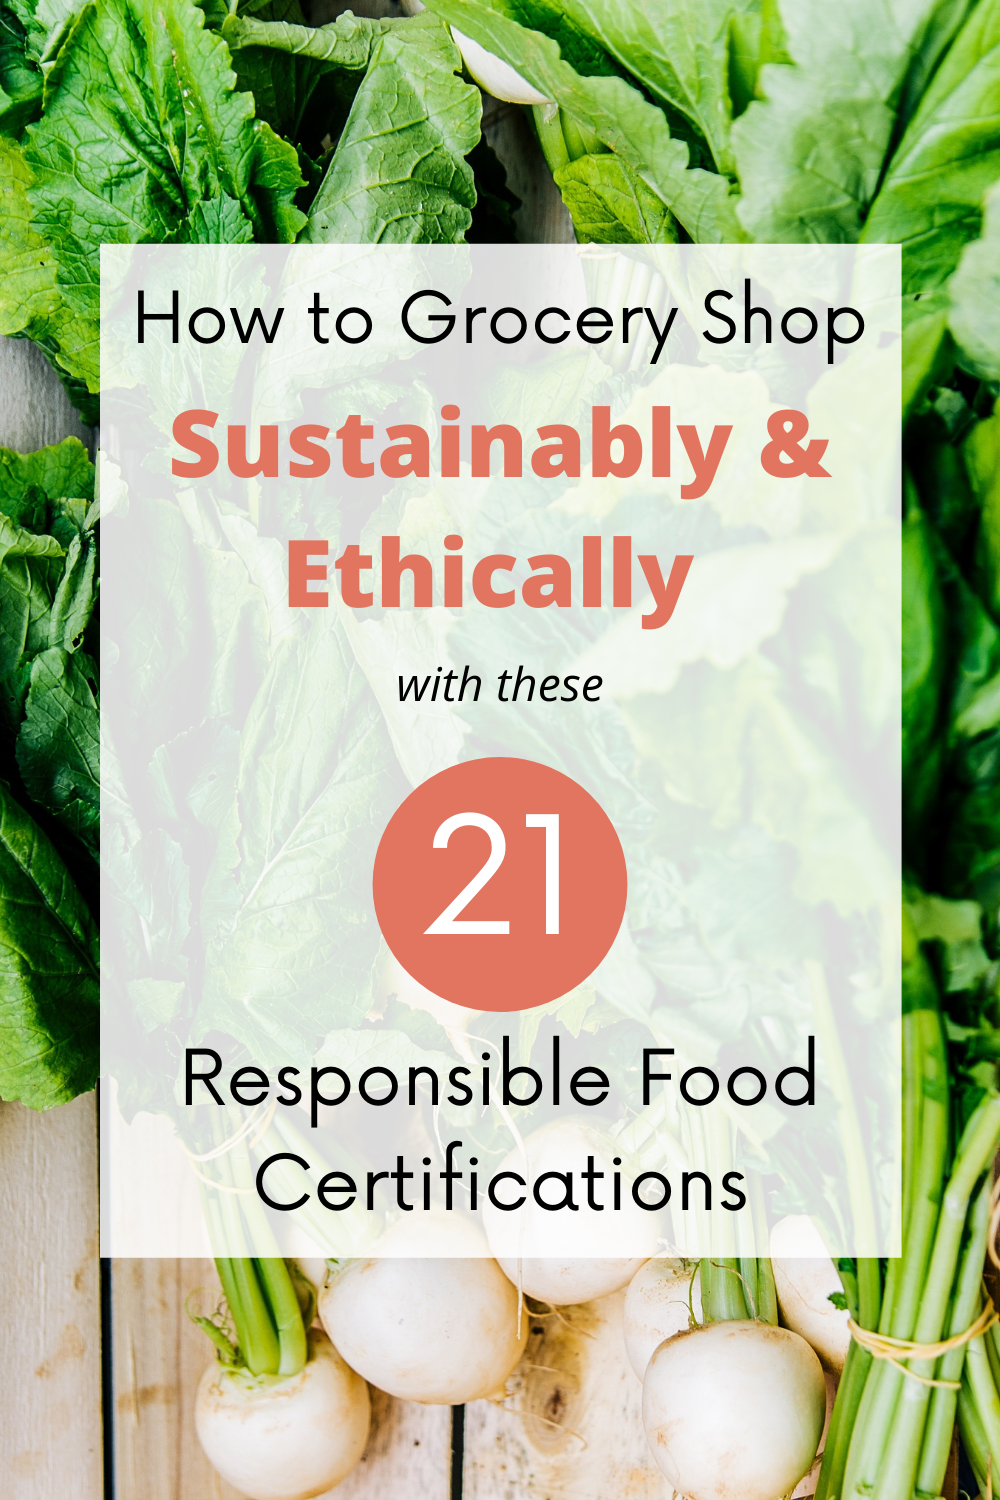 This guide provides a glance at the sustainable and ethical food certifications out there and what makes each of them unique in three overarching categories: (1) worker welfare, (2) sustainable agriculture, and (3) animal welfare.     #eco #ecofriendly #sustainable #sustainableliving #ethical #responsible #sustainablefood #sustainableagriculture #food #grocery #healthy #animalwelfare